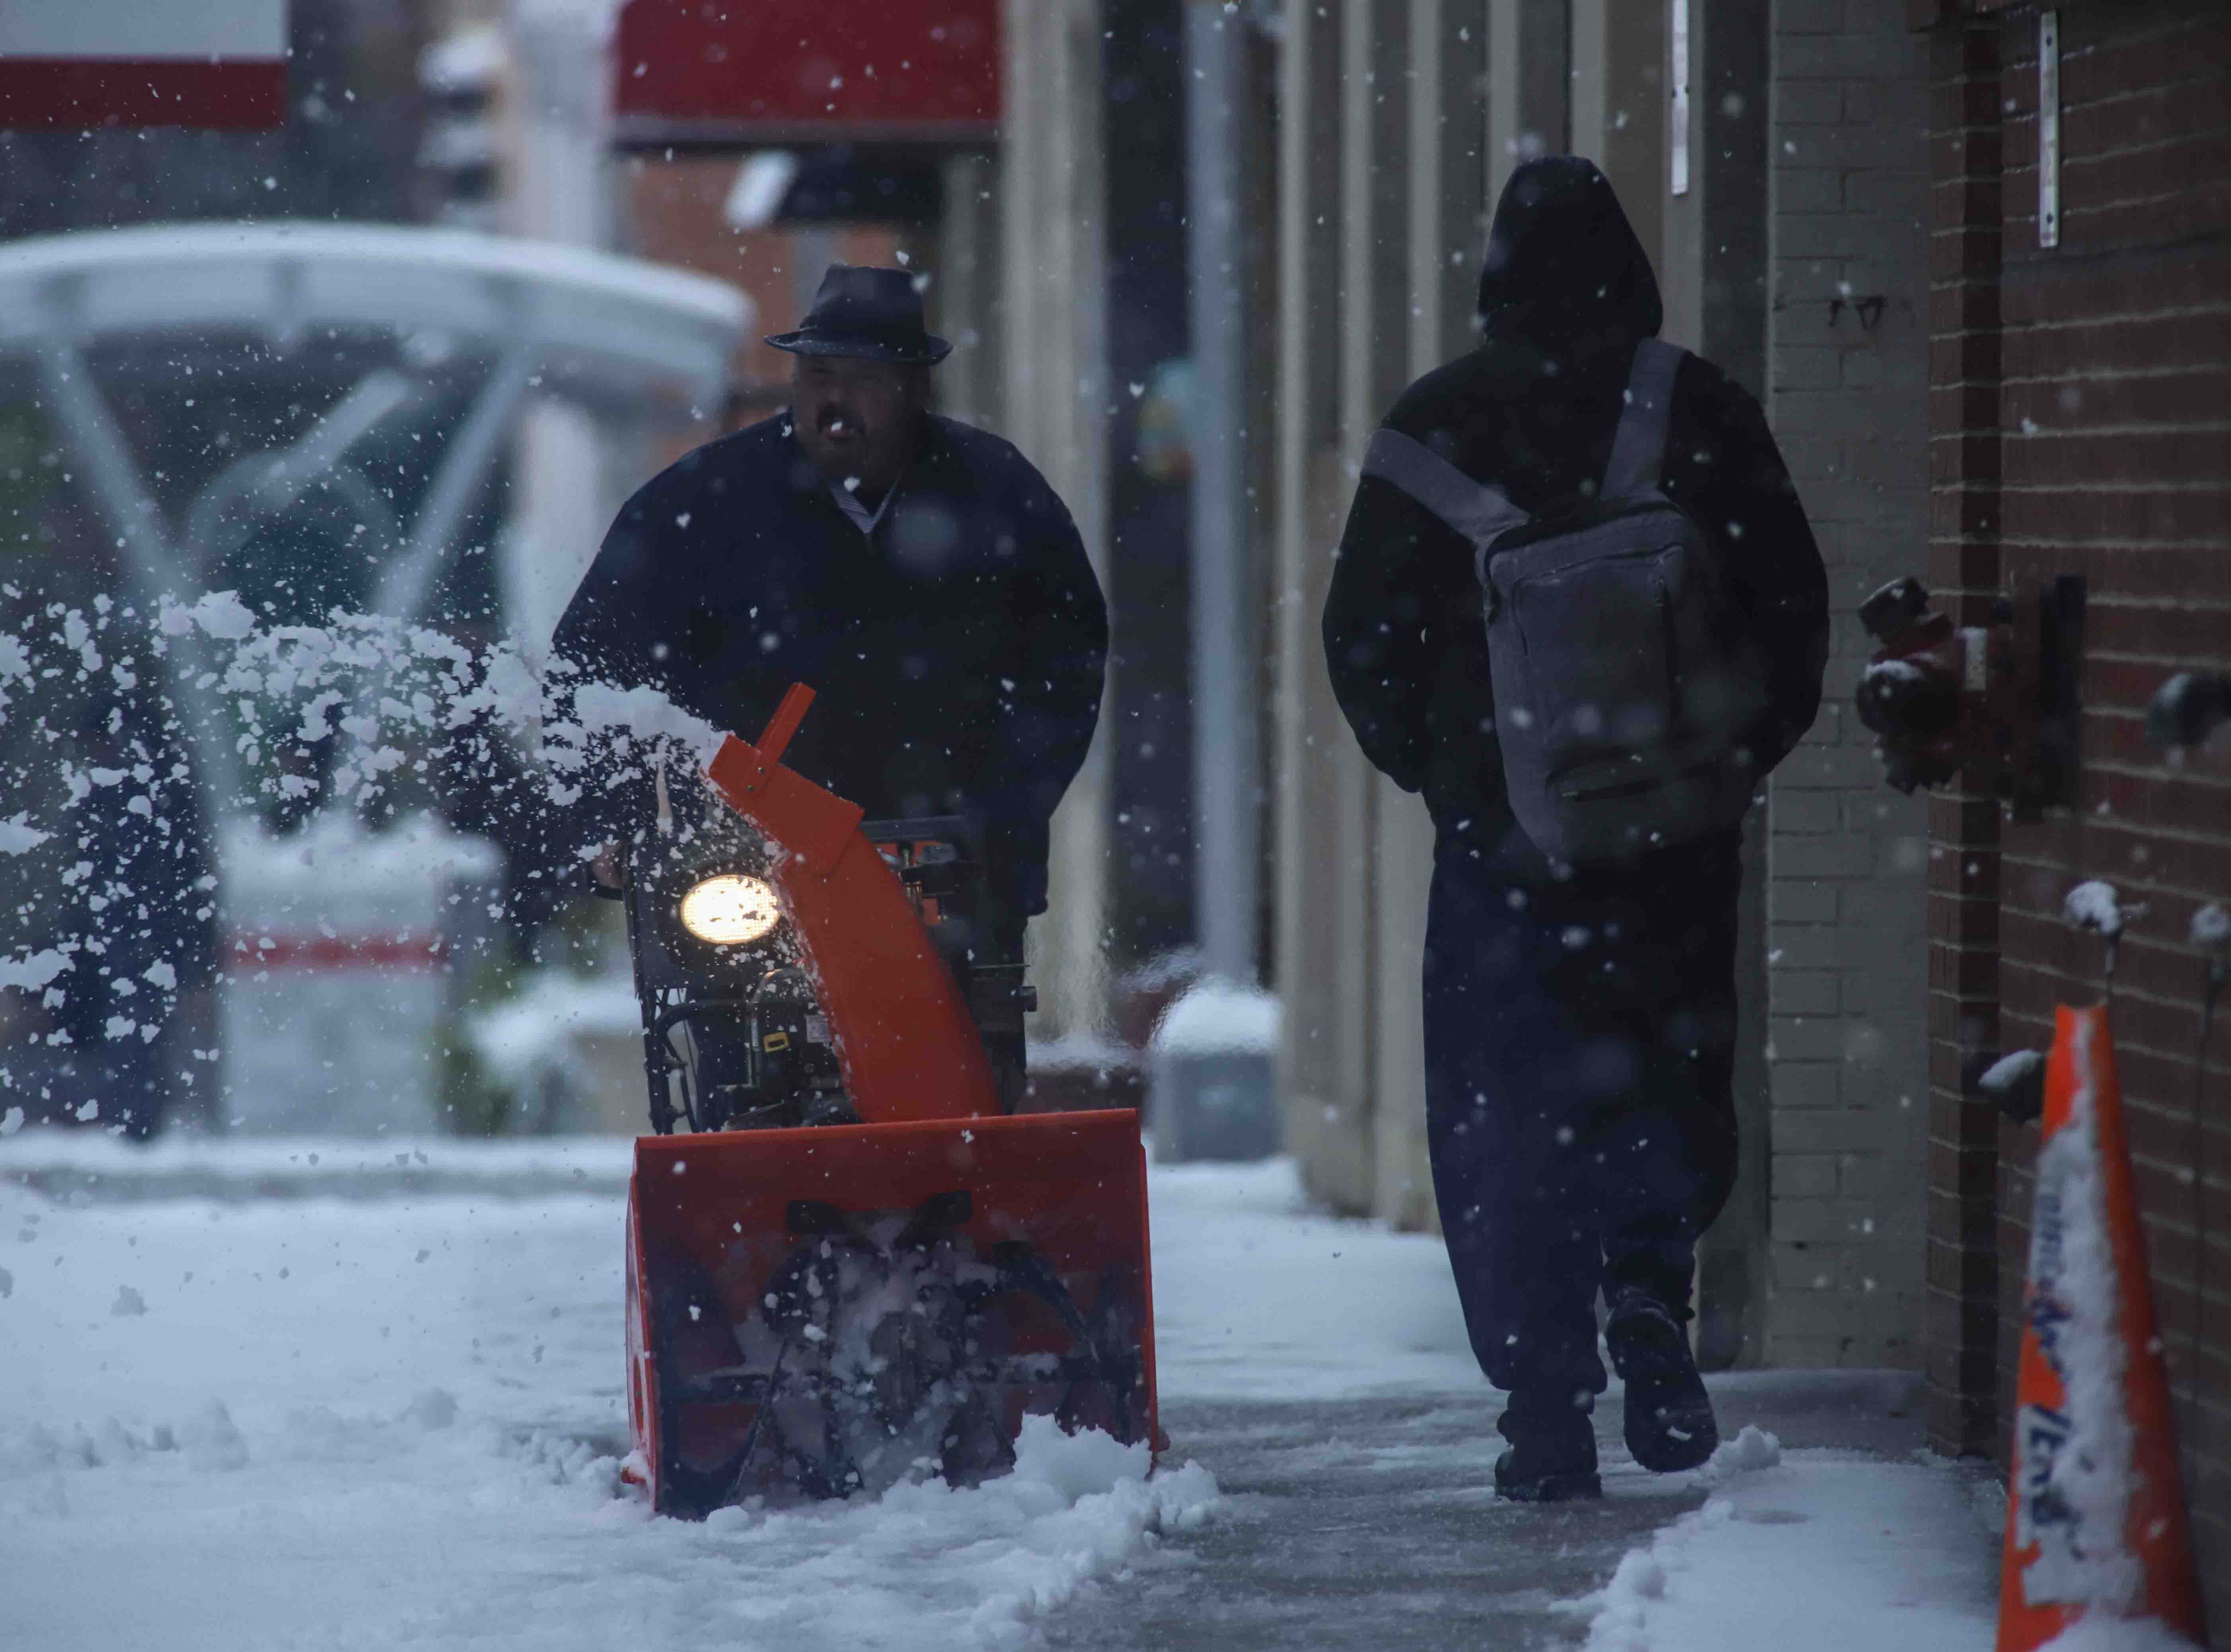 Maintenance crews begin to remove snow from the sidewalks of North King Street during heavy snowfall on Thursday, Nov. 15, 2018, in Wilmington.